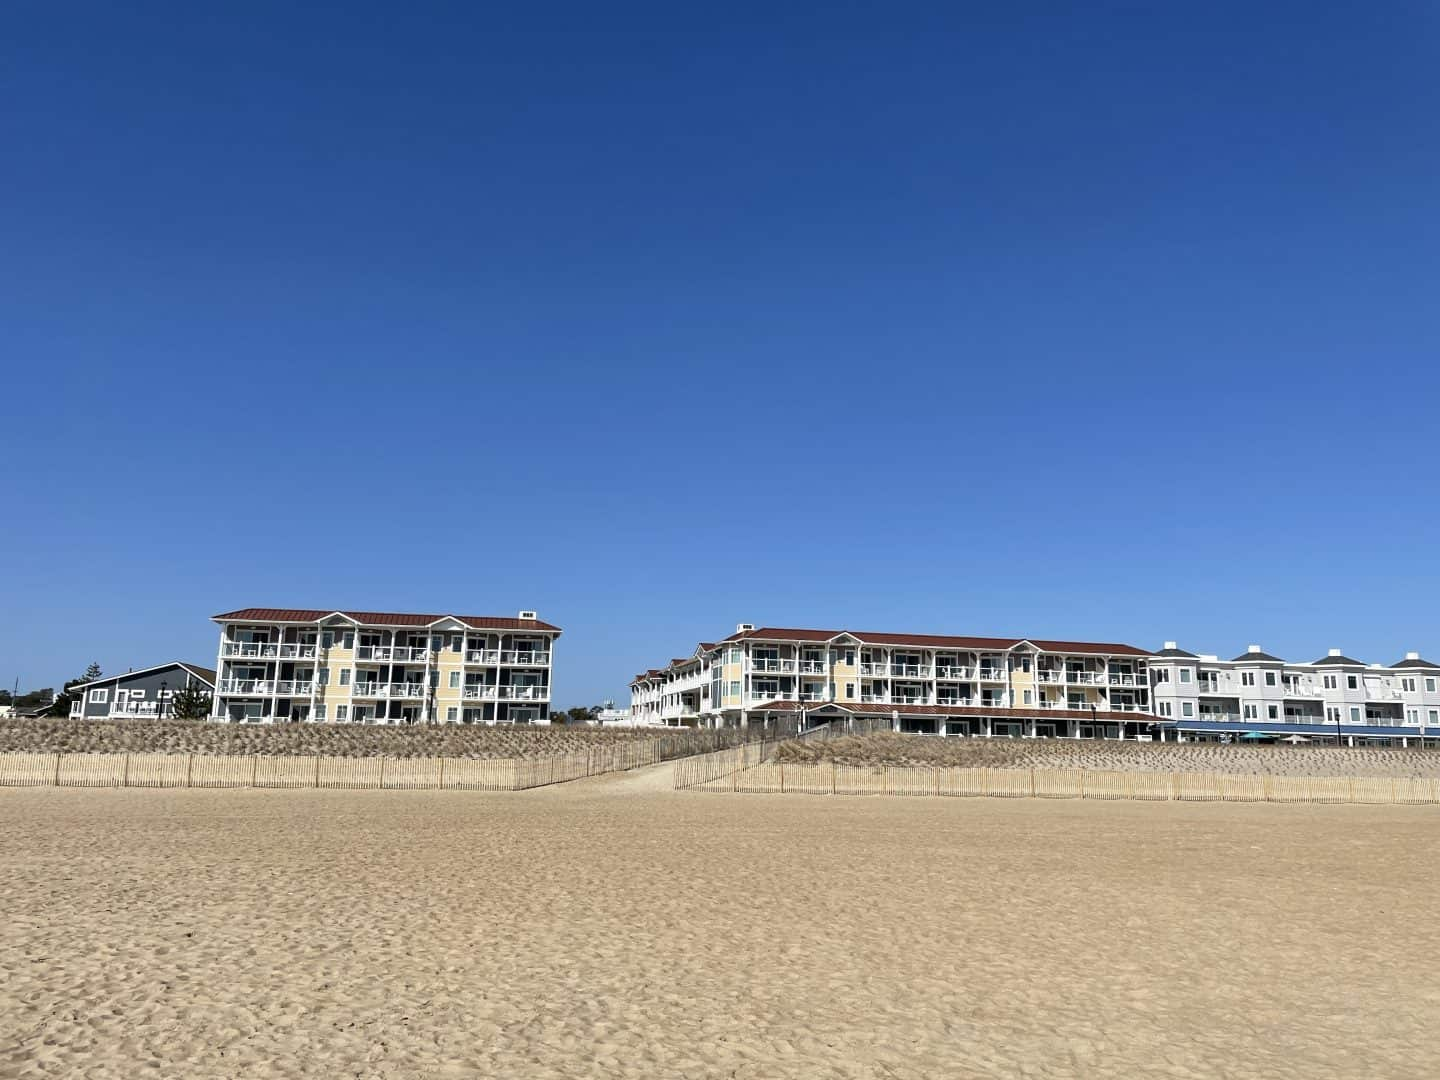 Bethany beach Ocean Suites Hotel Exterior from beach